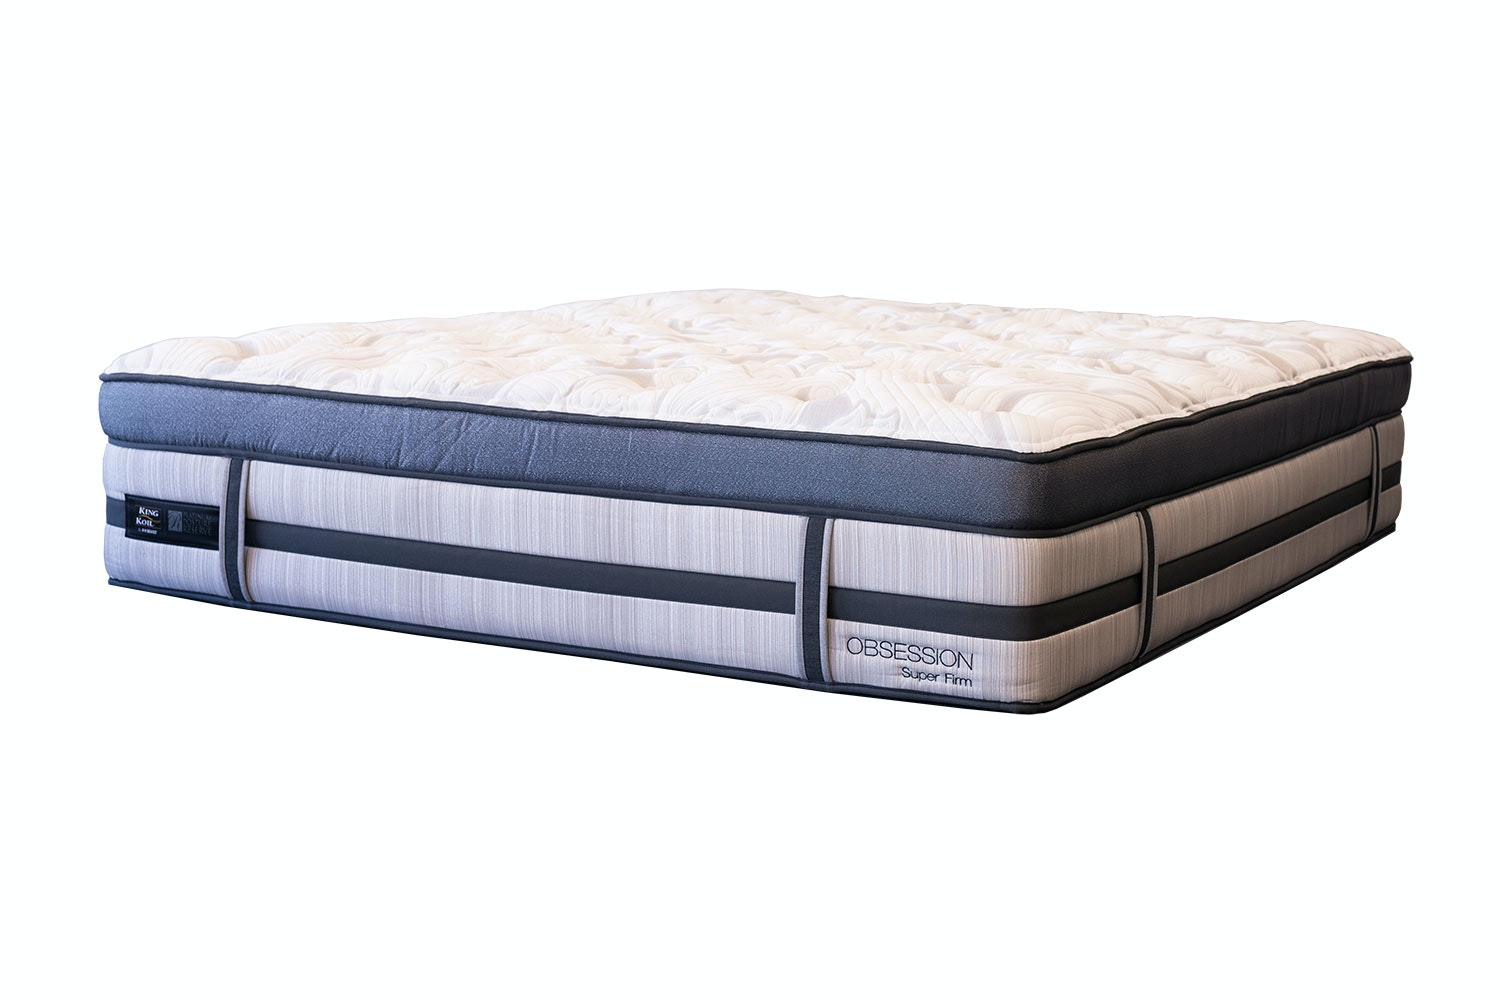 Obsession Super Firm Single Mattress by King Koil